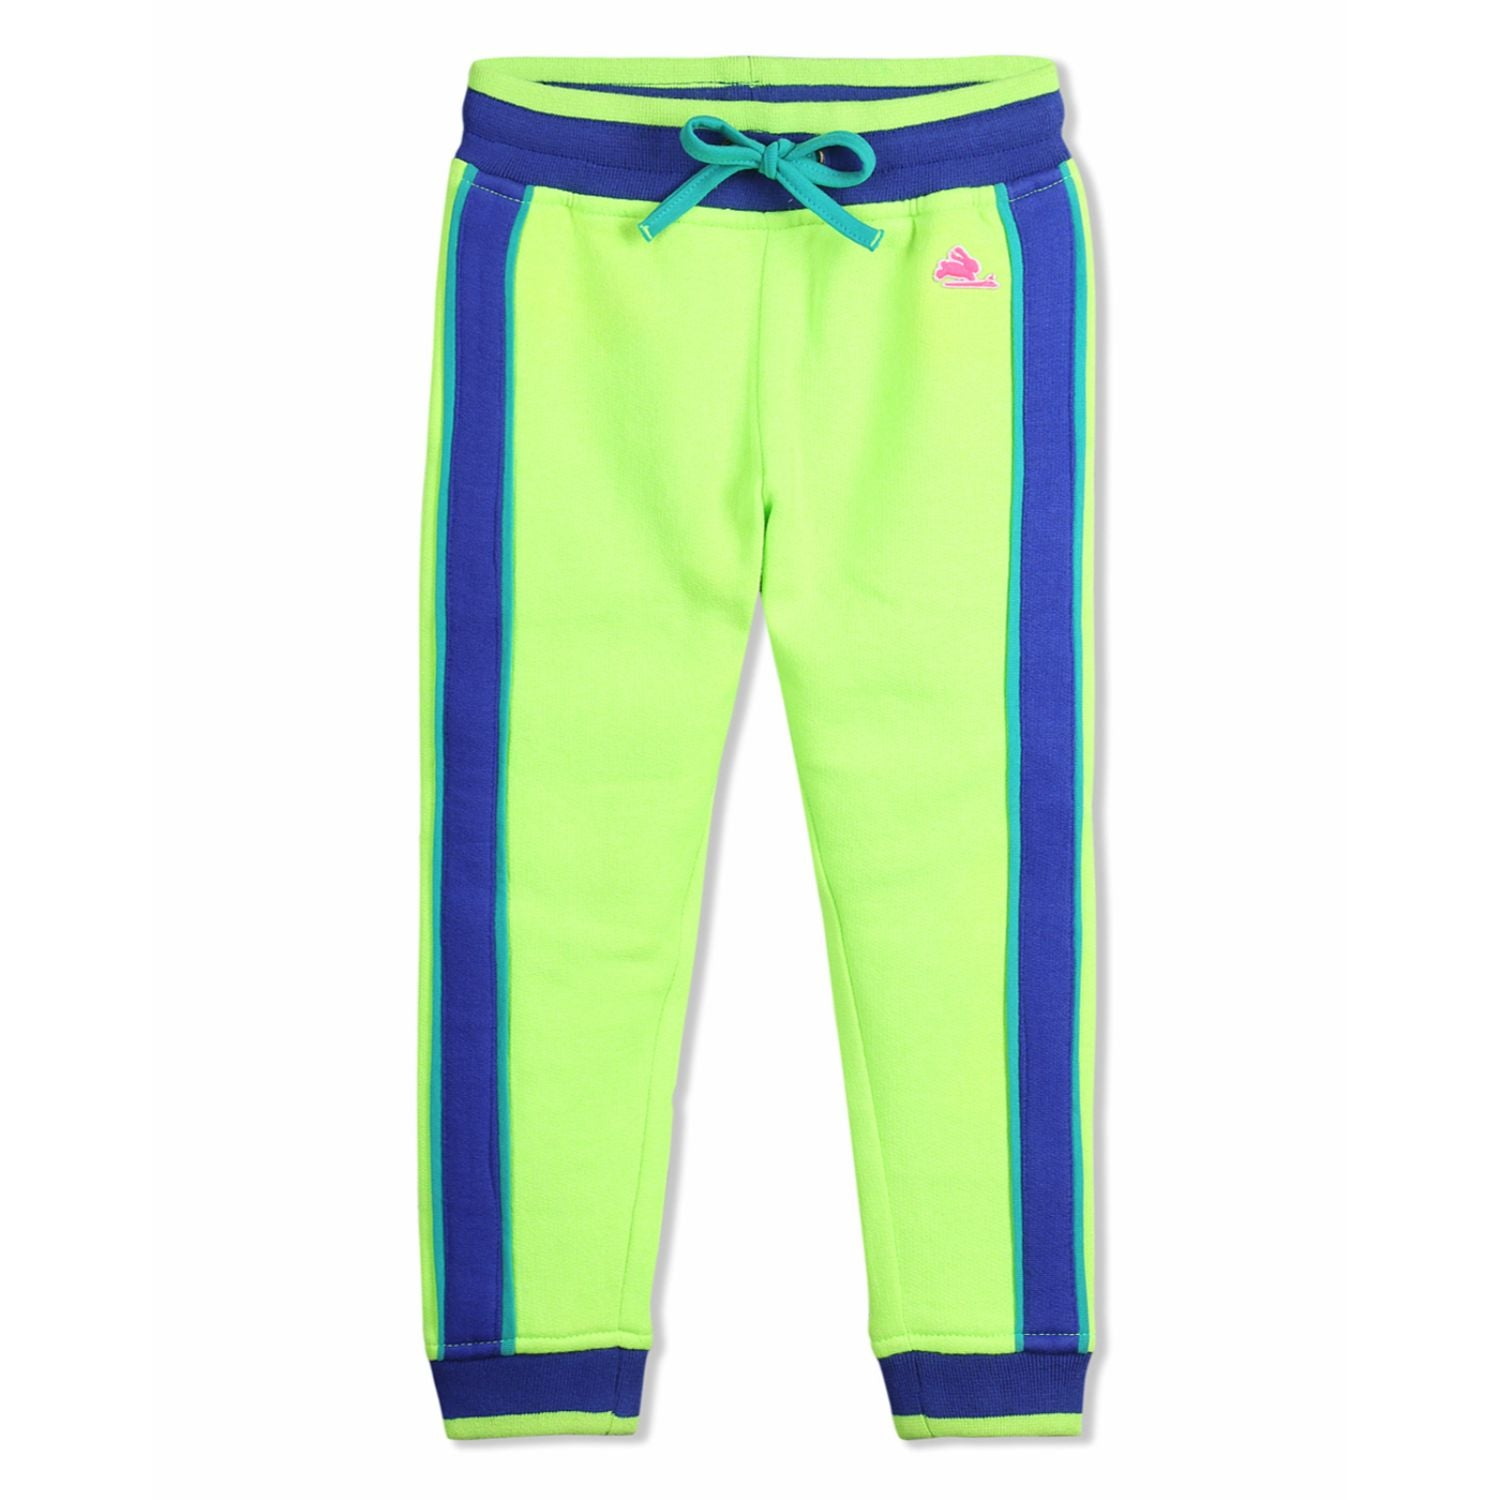 Brady's Sweatpants for kids